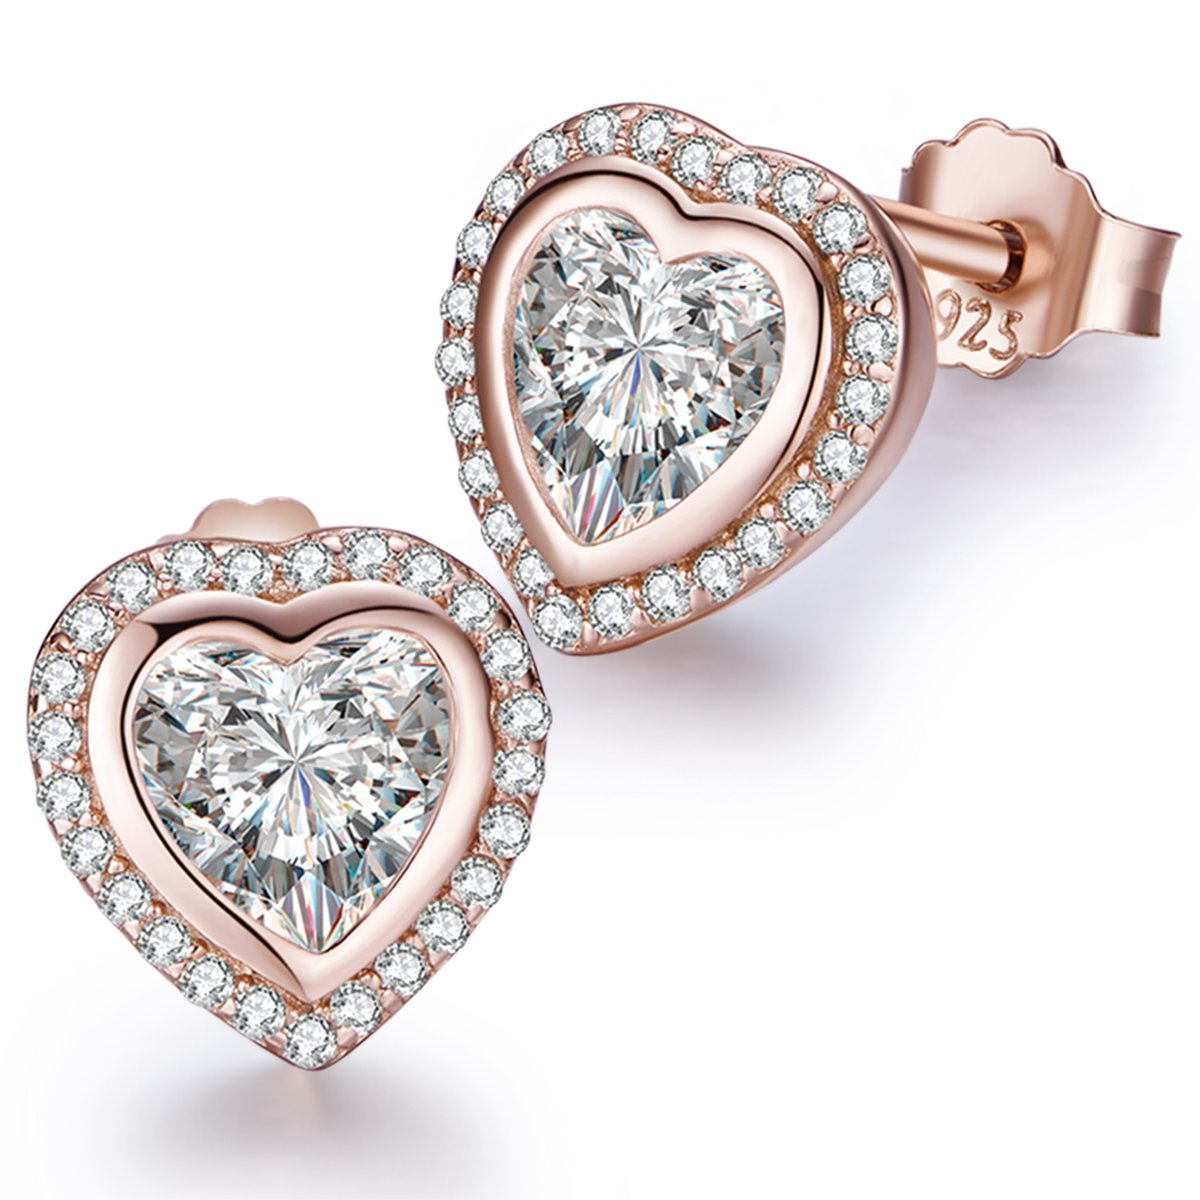 Twenty Plus Sparkling One Love Heart Shaped Stud Earrings with CZ Jewelry Gifts for Women